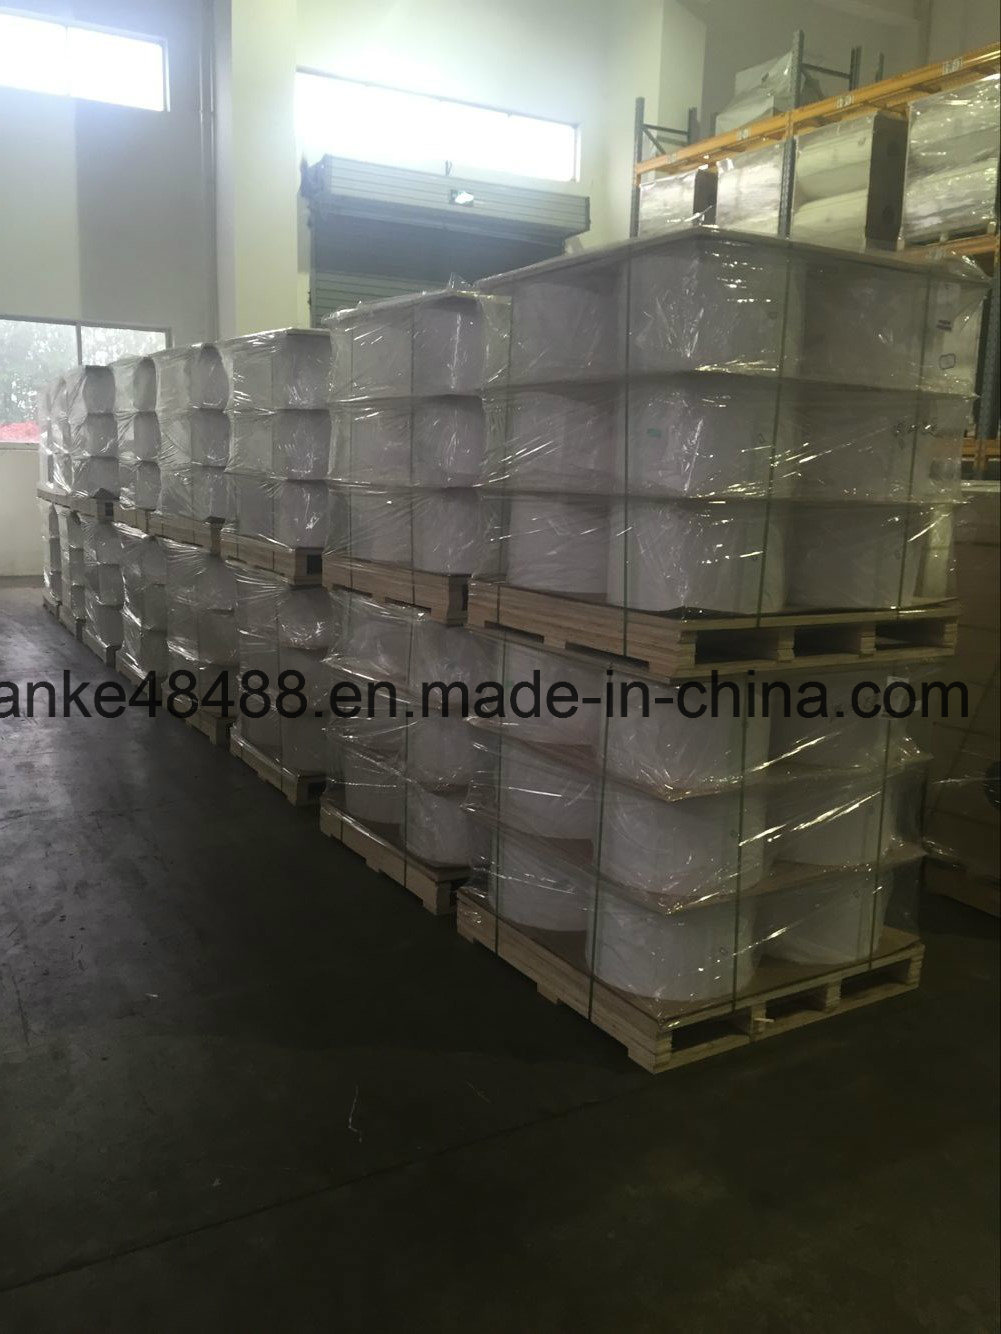 White BOPP Film, Pearlized BOPP Film for Label